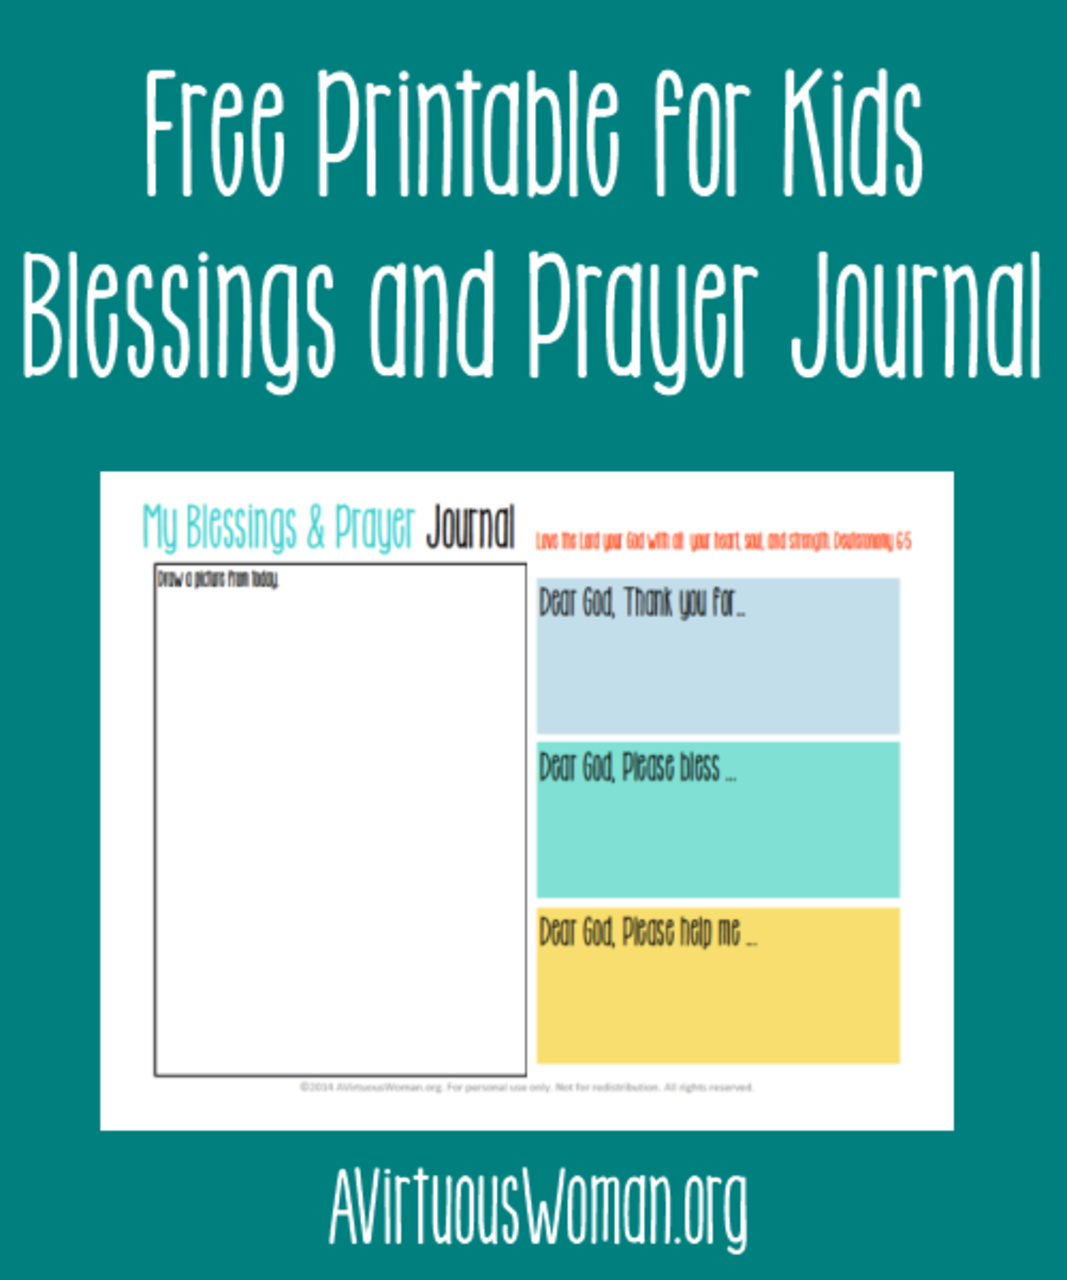 Printable devotionals for teens